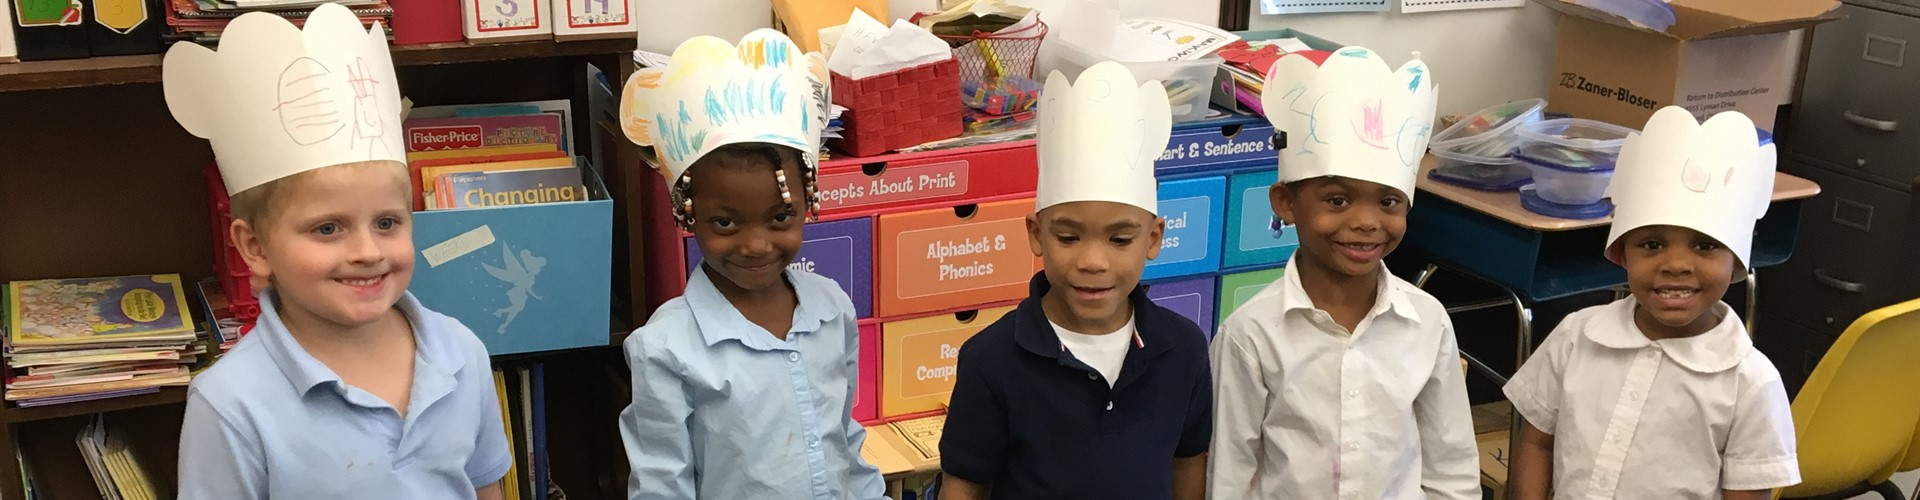 Ms. Weeks Kindergarten Reading Group practices the letter C by making chef hats